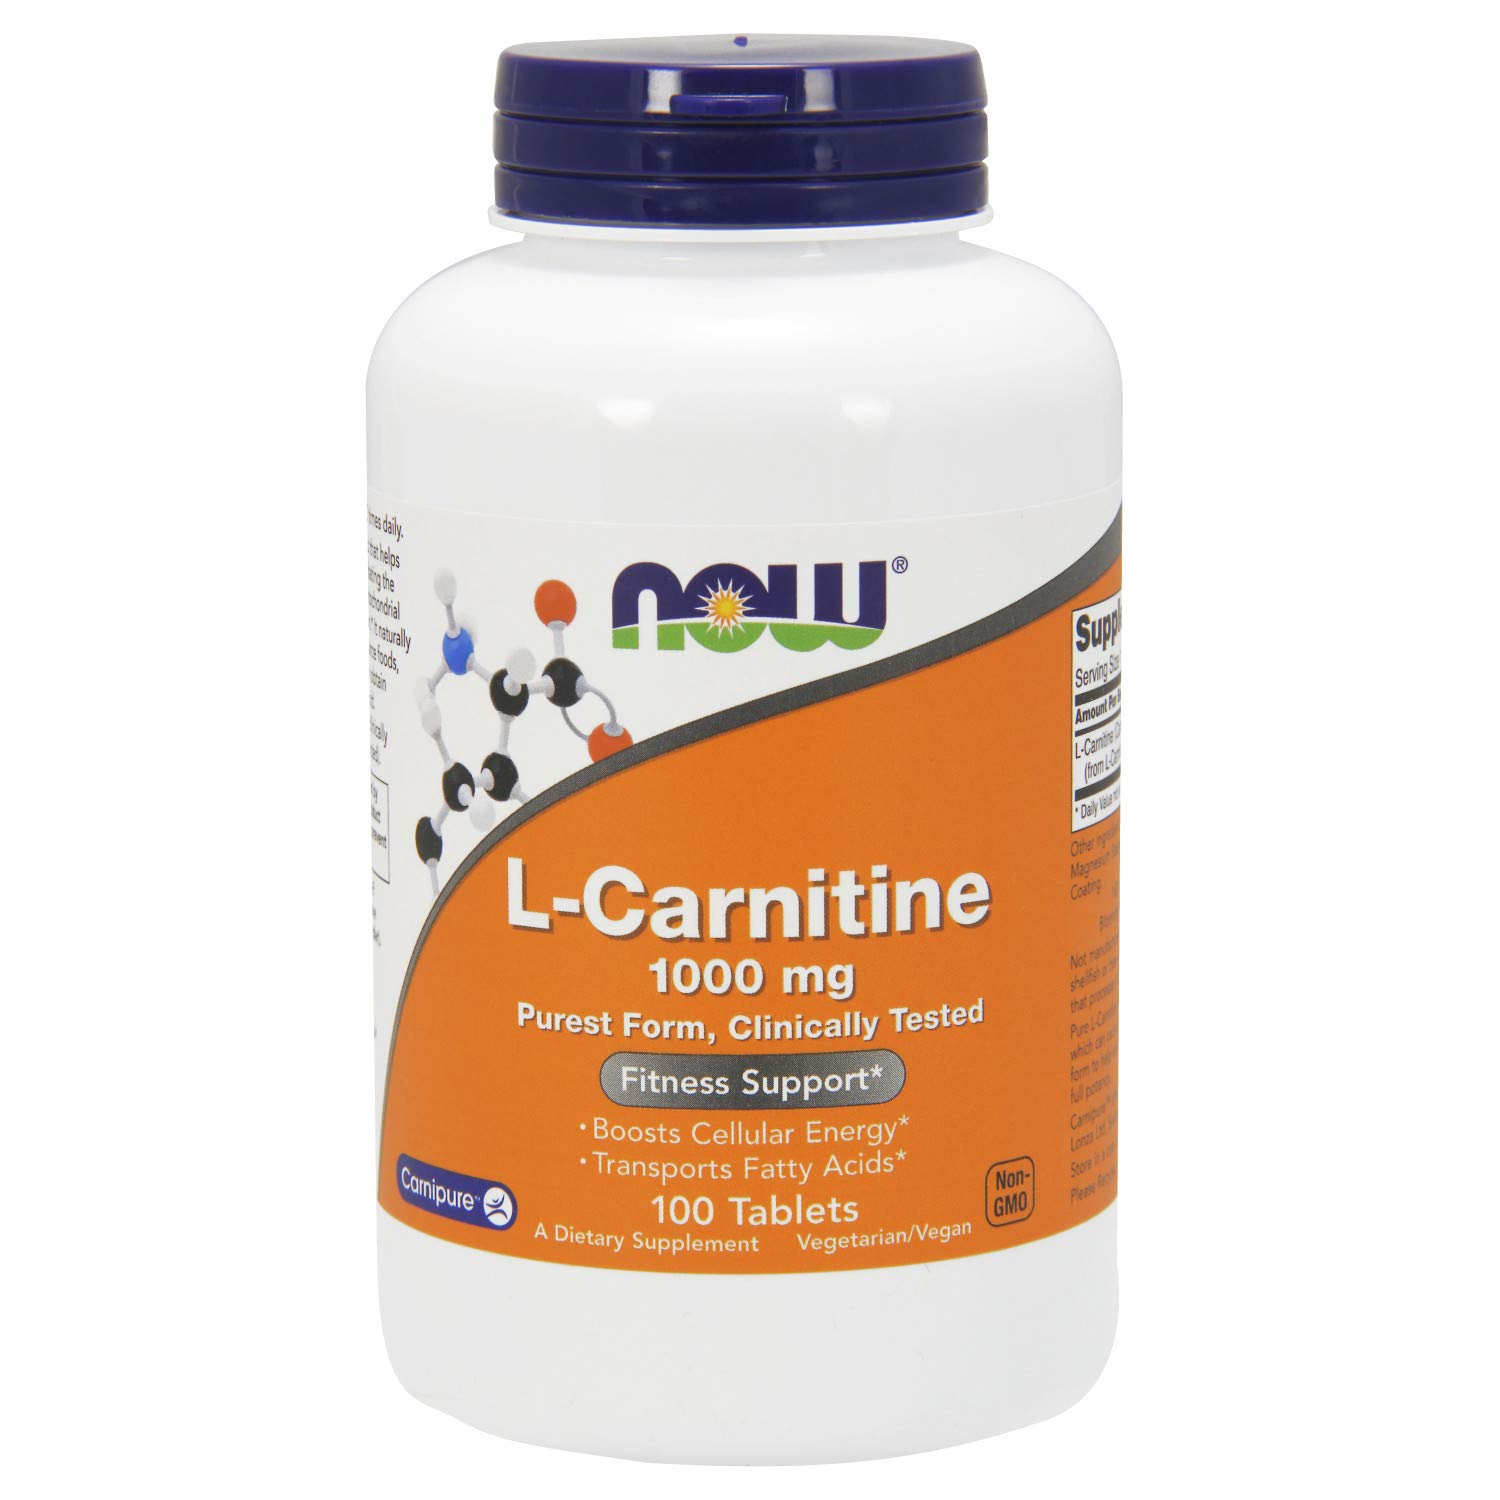 NOW Supplements, L-Carnitine 1,000 mg, Purest Form, Amino Acid, Fitness Support*, 100 Tablets